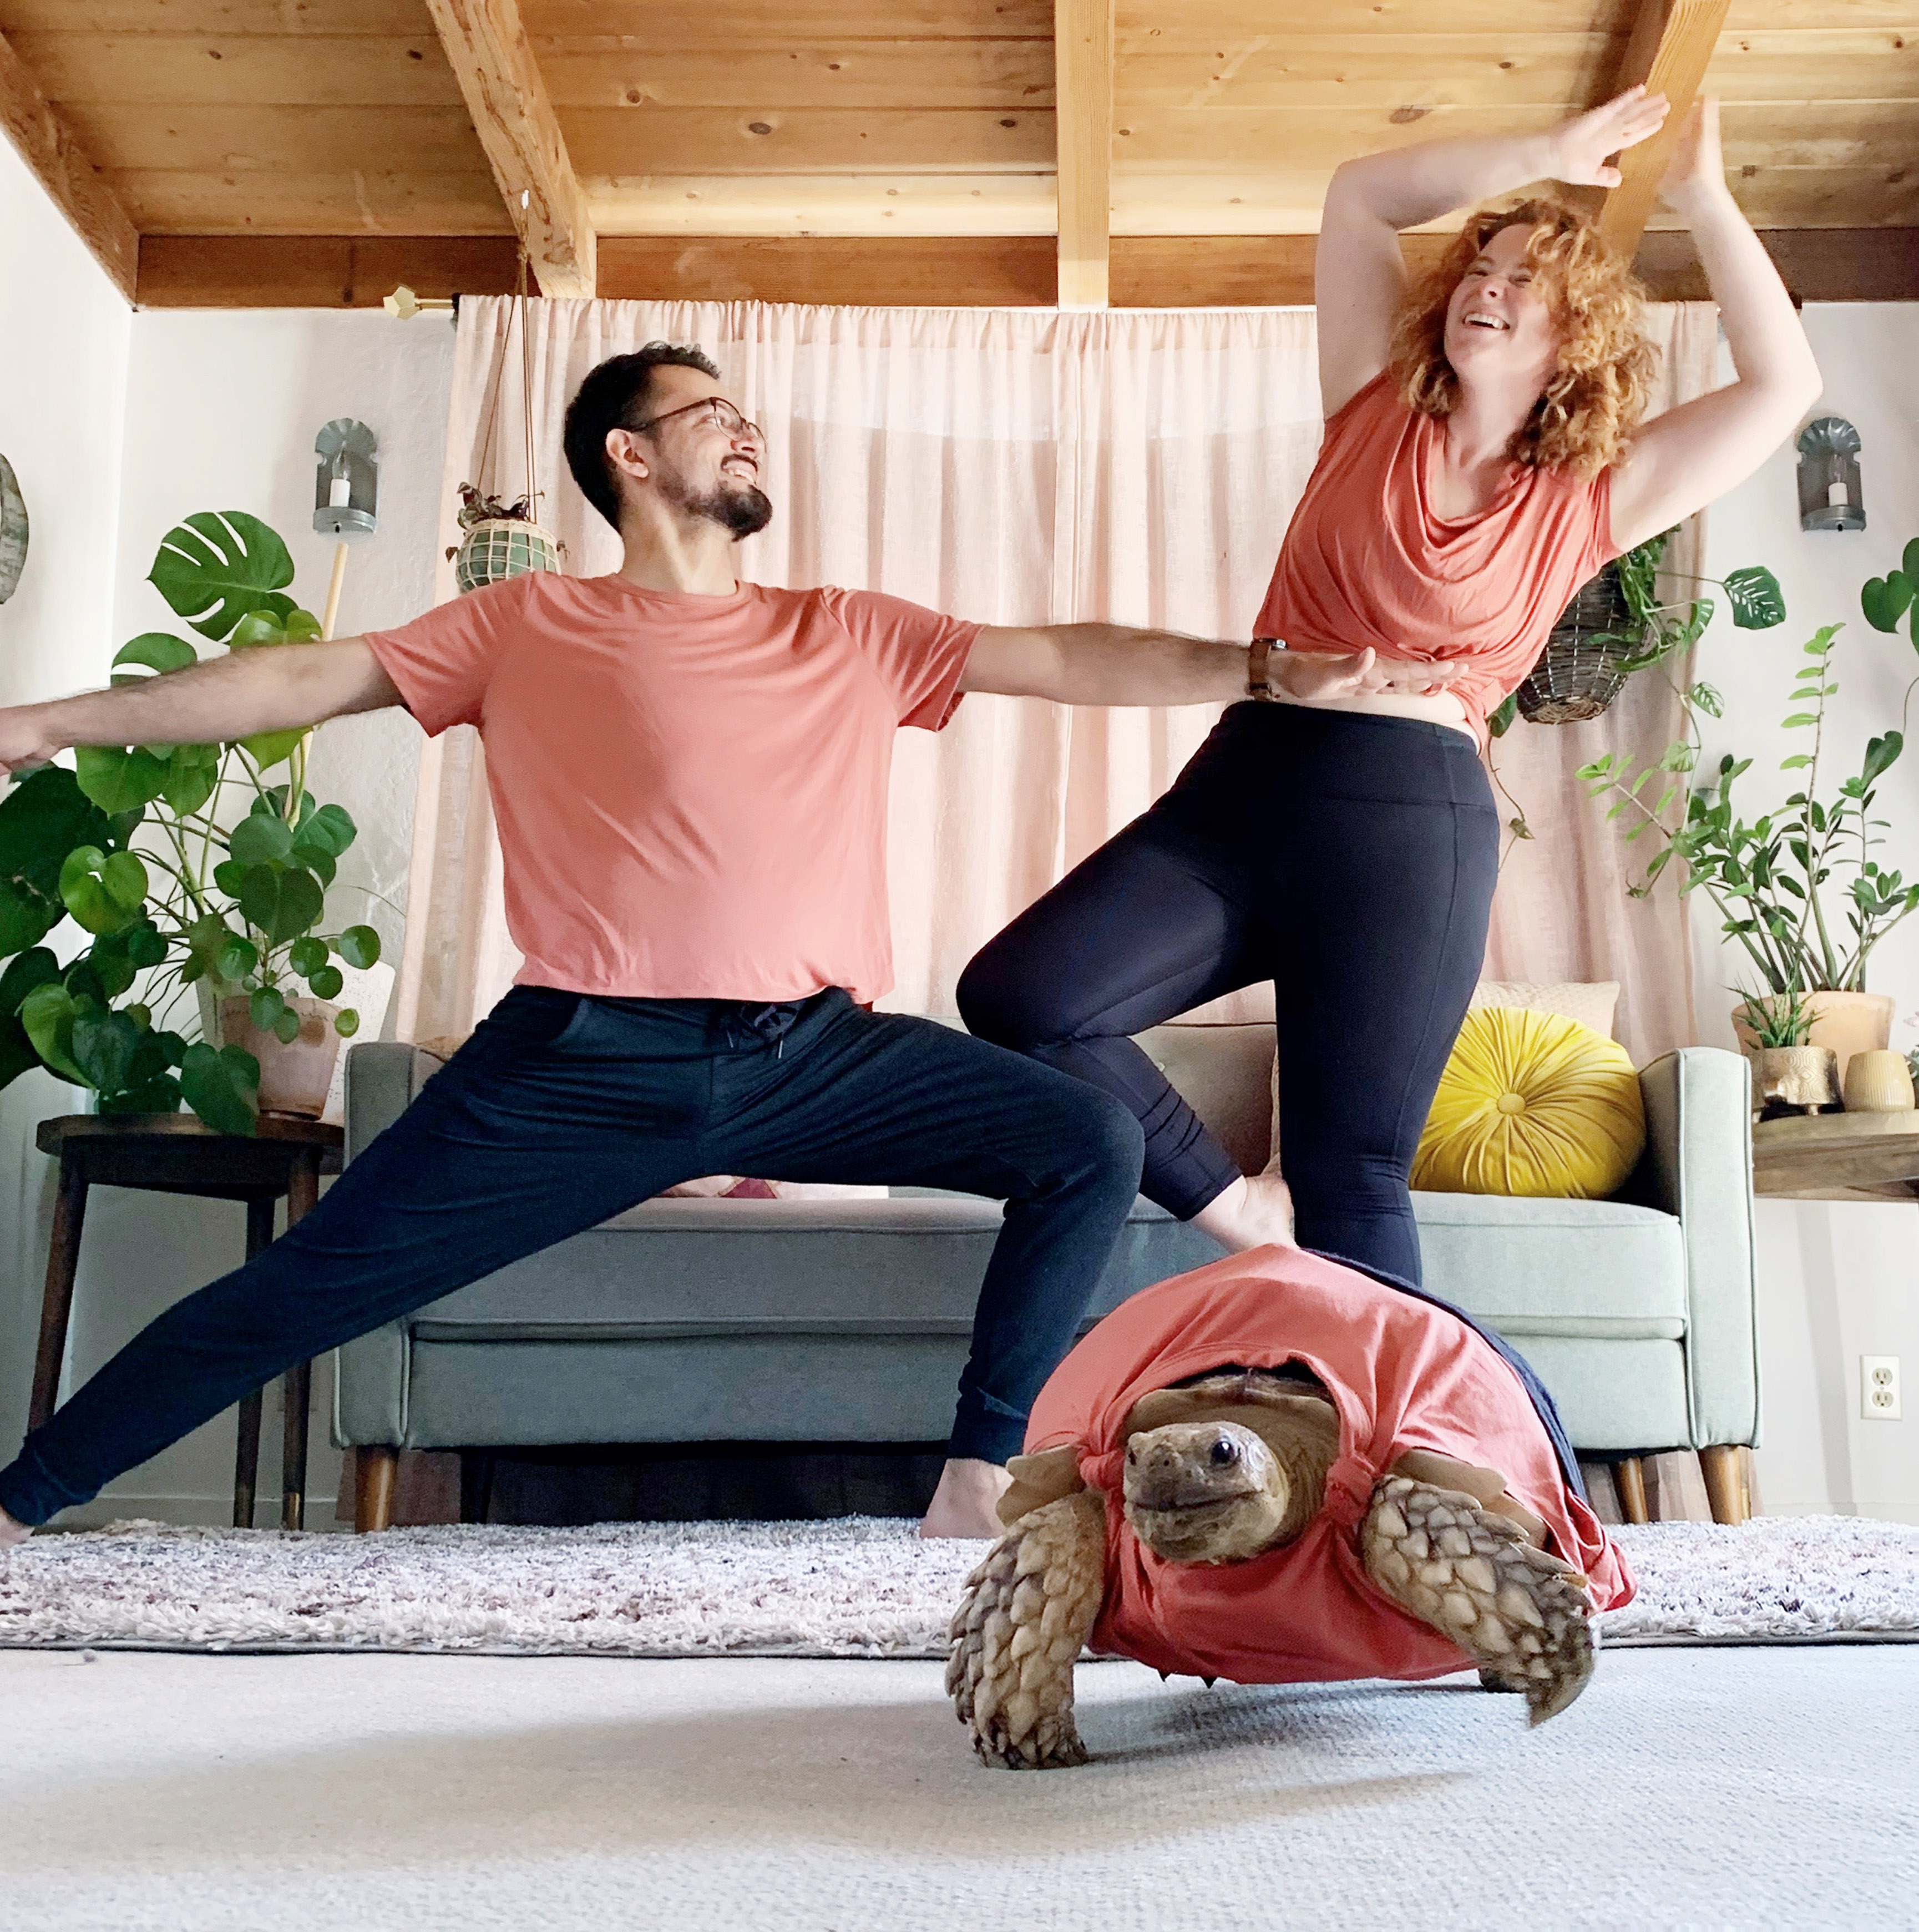 Couple create matching yoga outfit for their tortoise